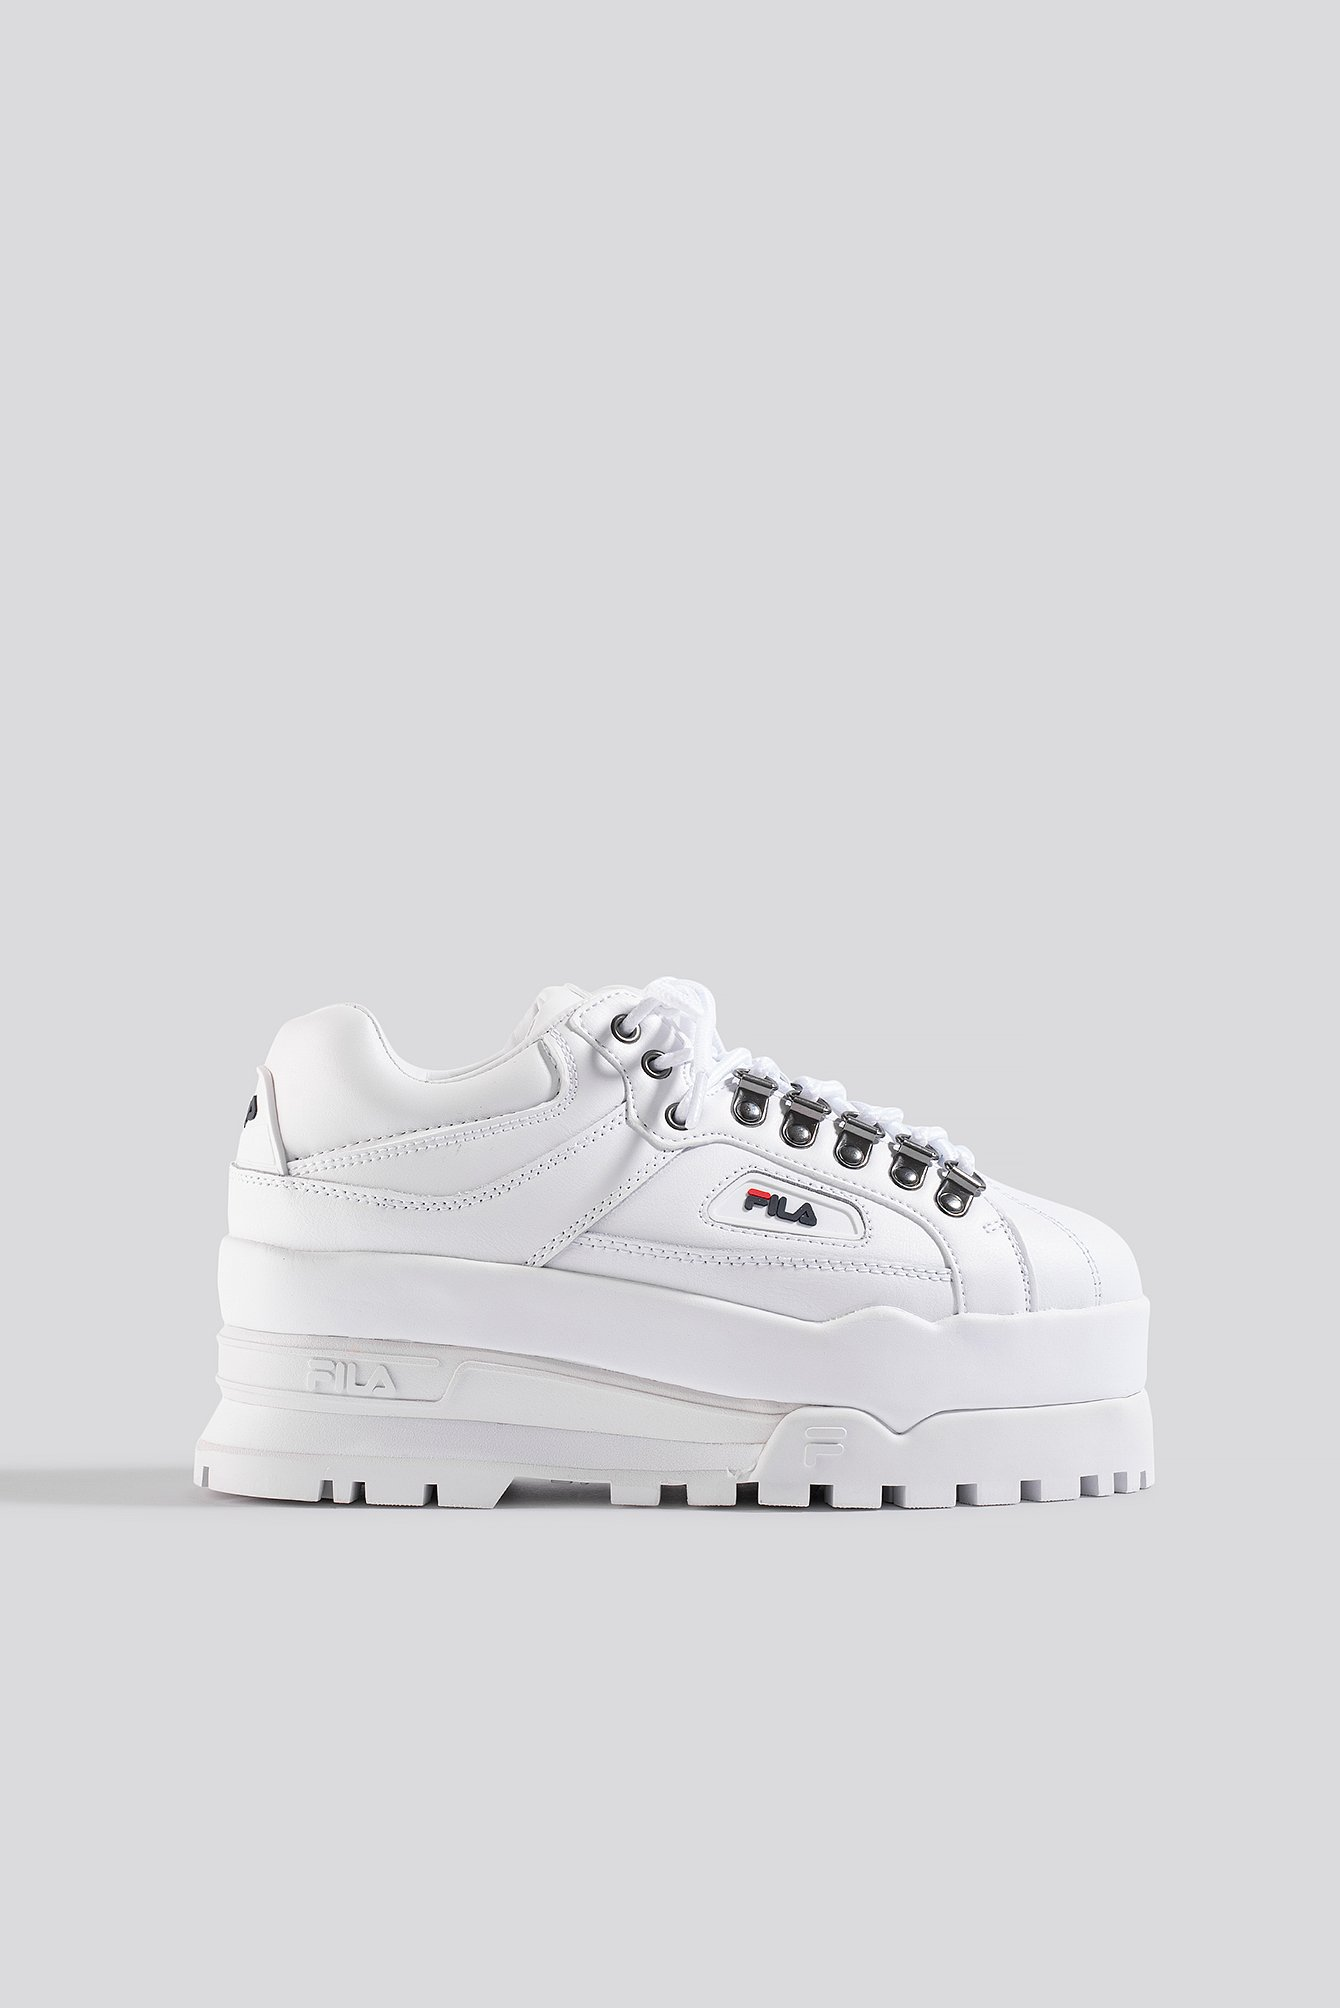 fila -  Trailblazer Wedge Wmn Sneaker - White